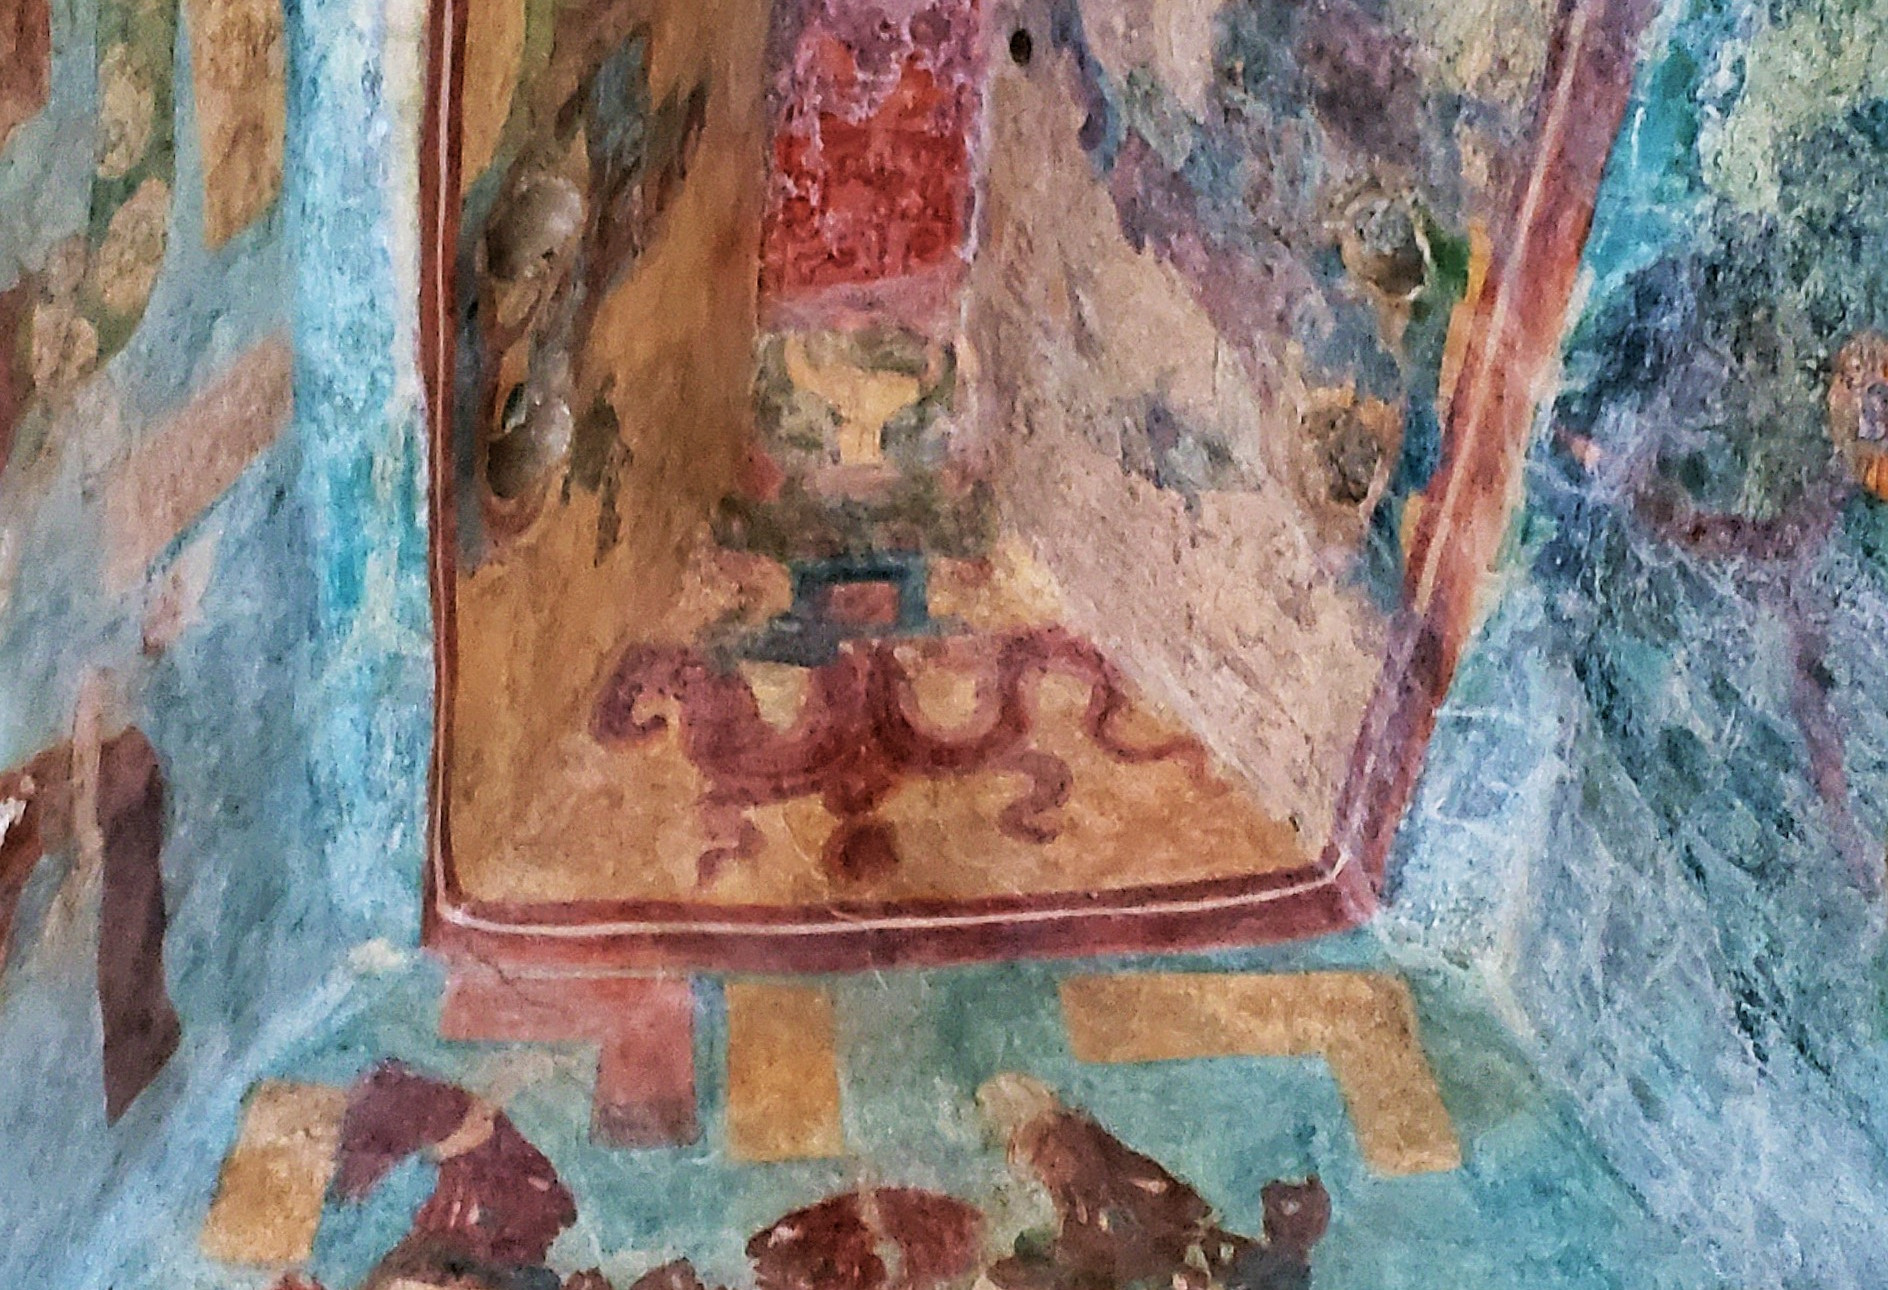 View toward a chamber ceiling in the Temple of Murals